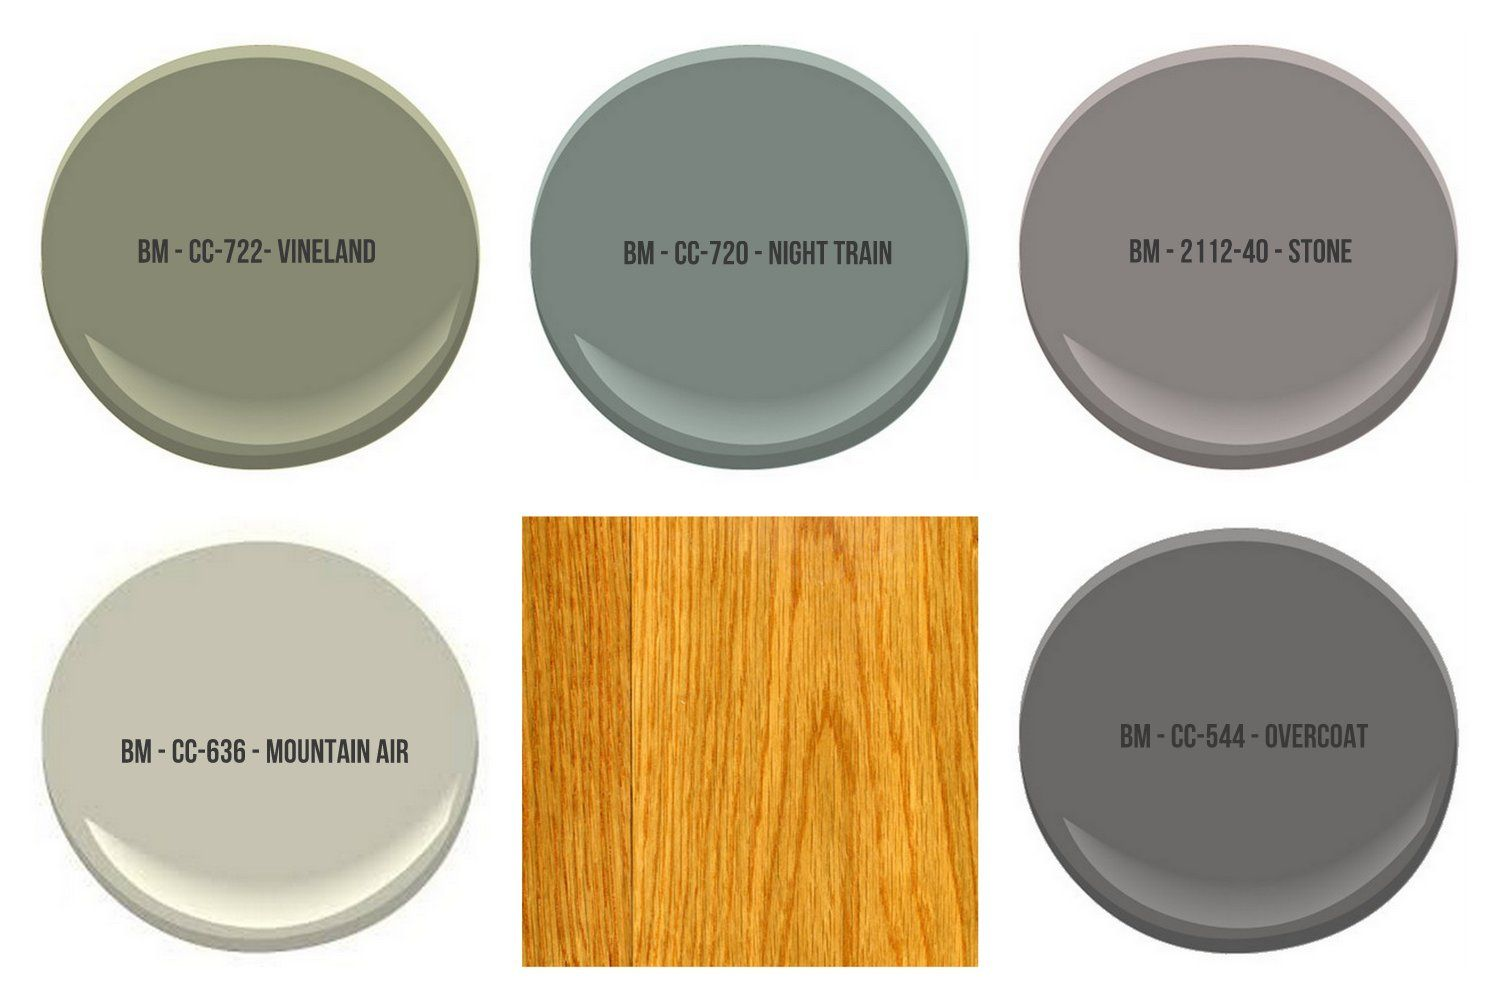 All colors shown are by benjamin moore paint colors to compliment honey oak trim